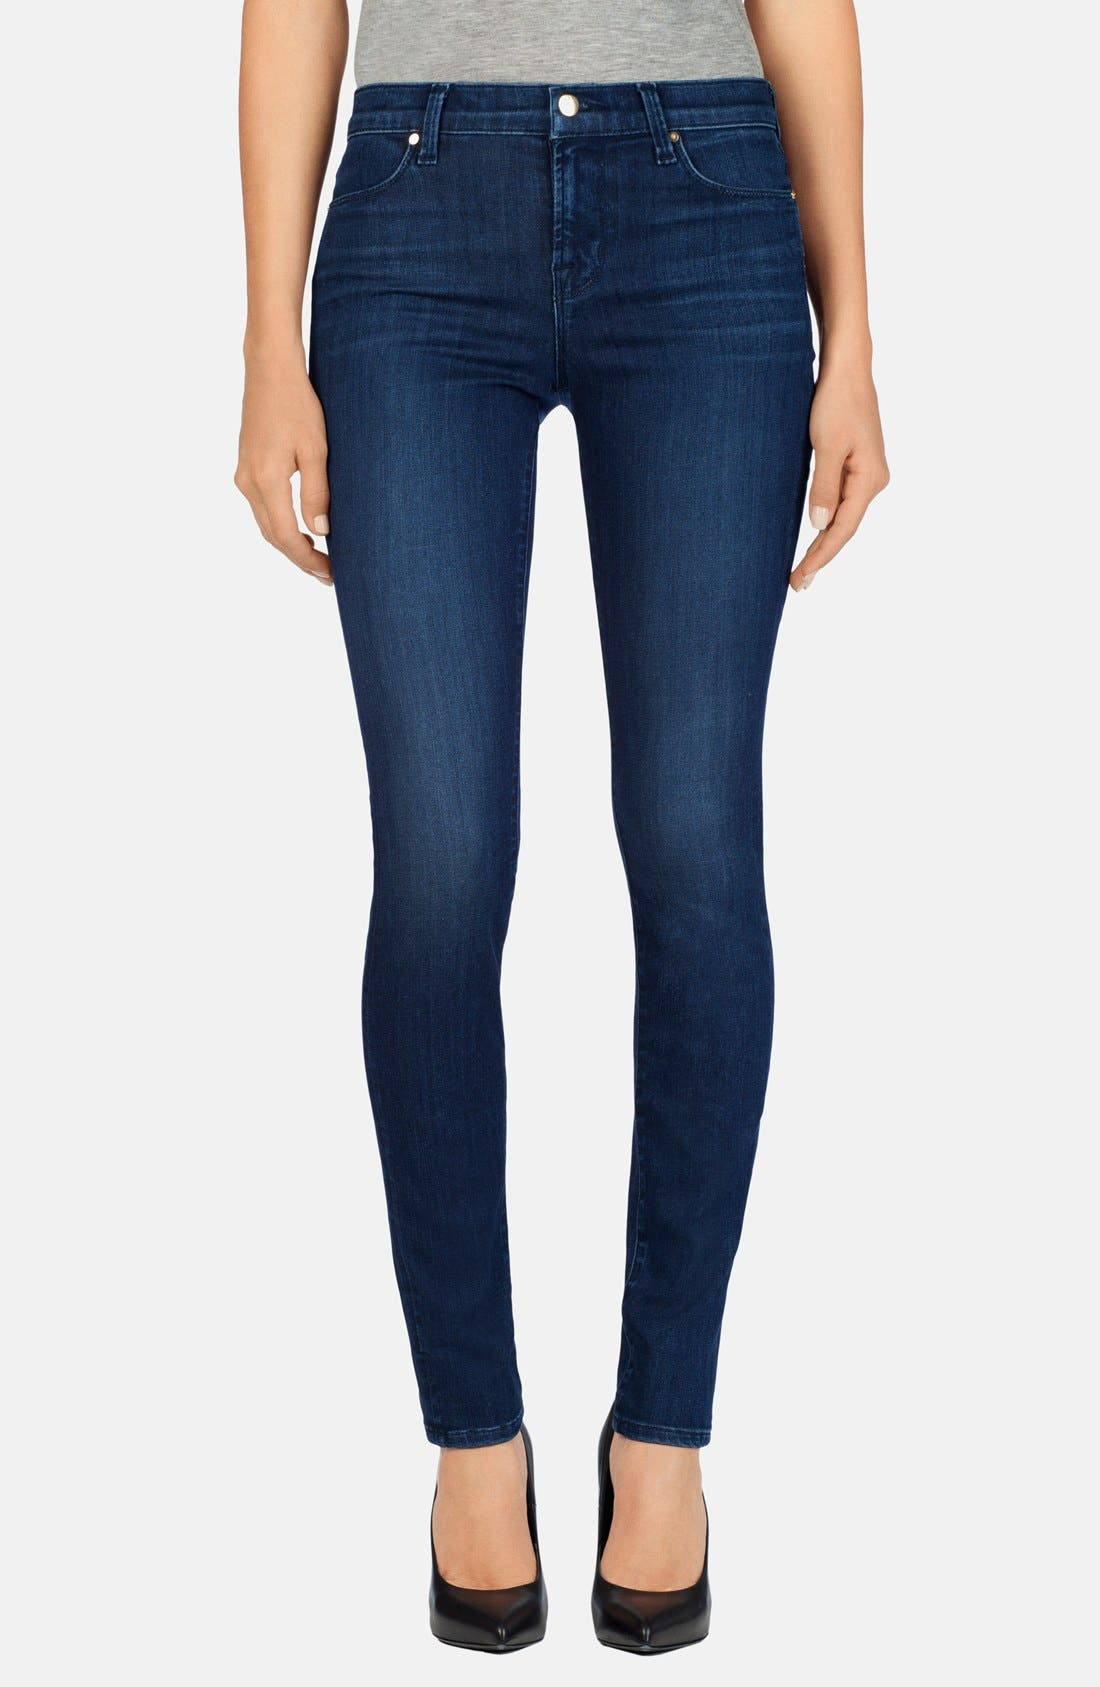 '620' Mid Rise Super Skinny Jeans,                             Main thumbnail 1, color,                             Fix